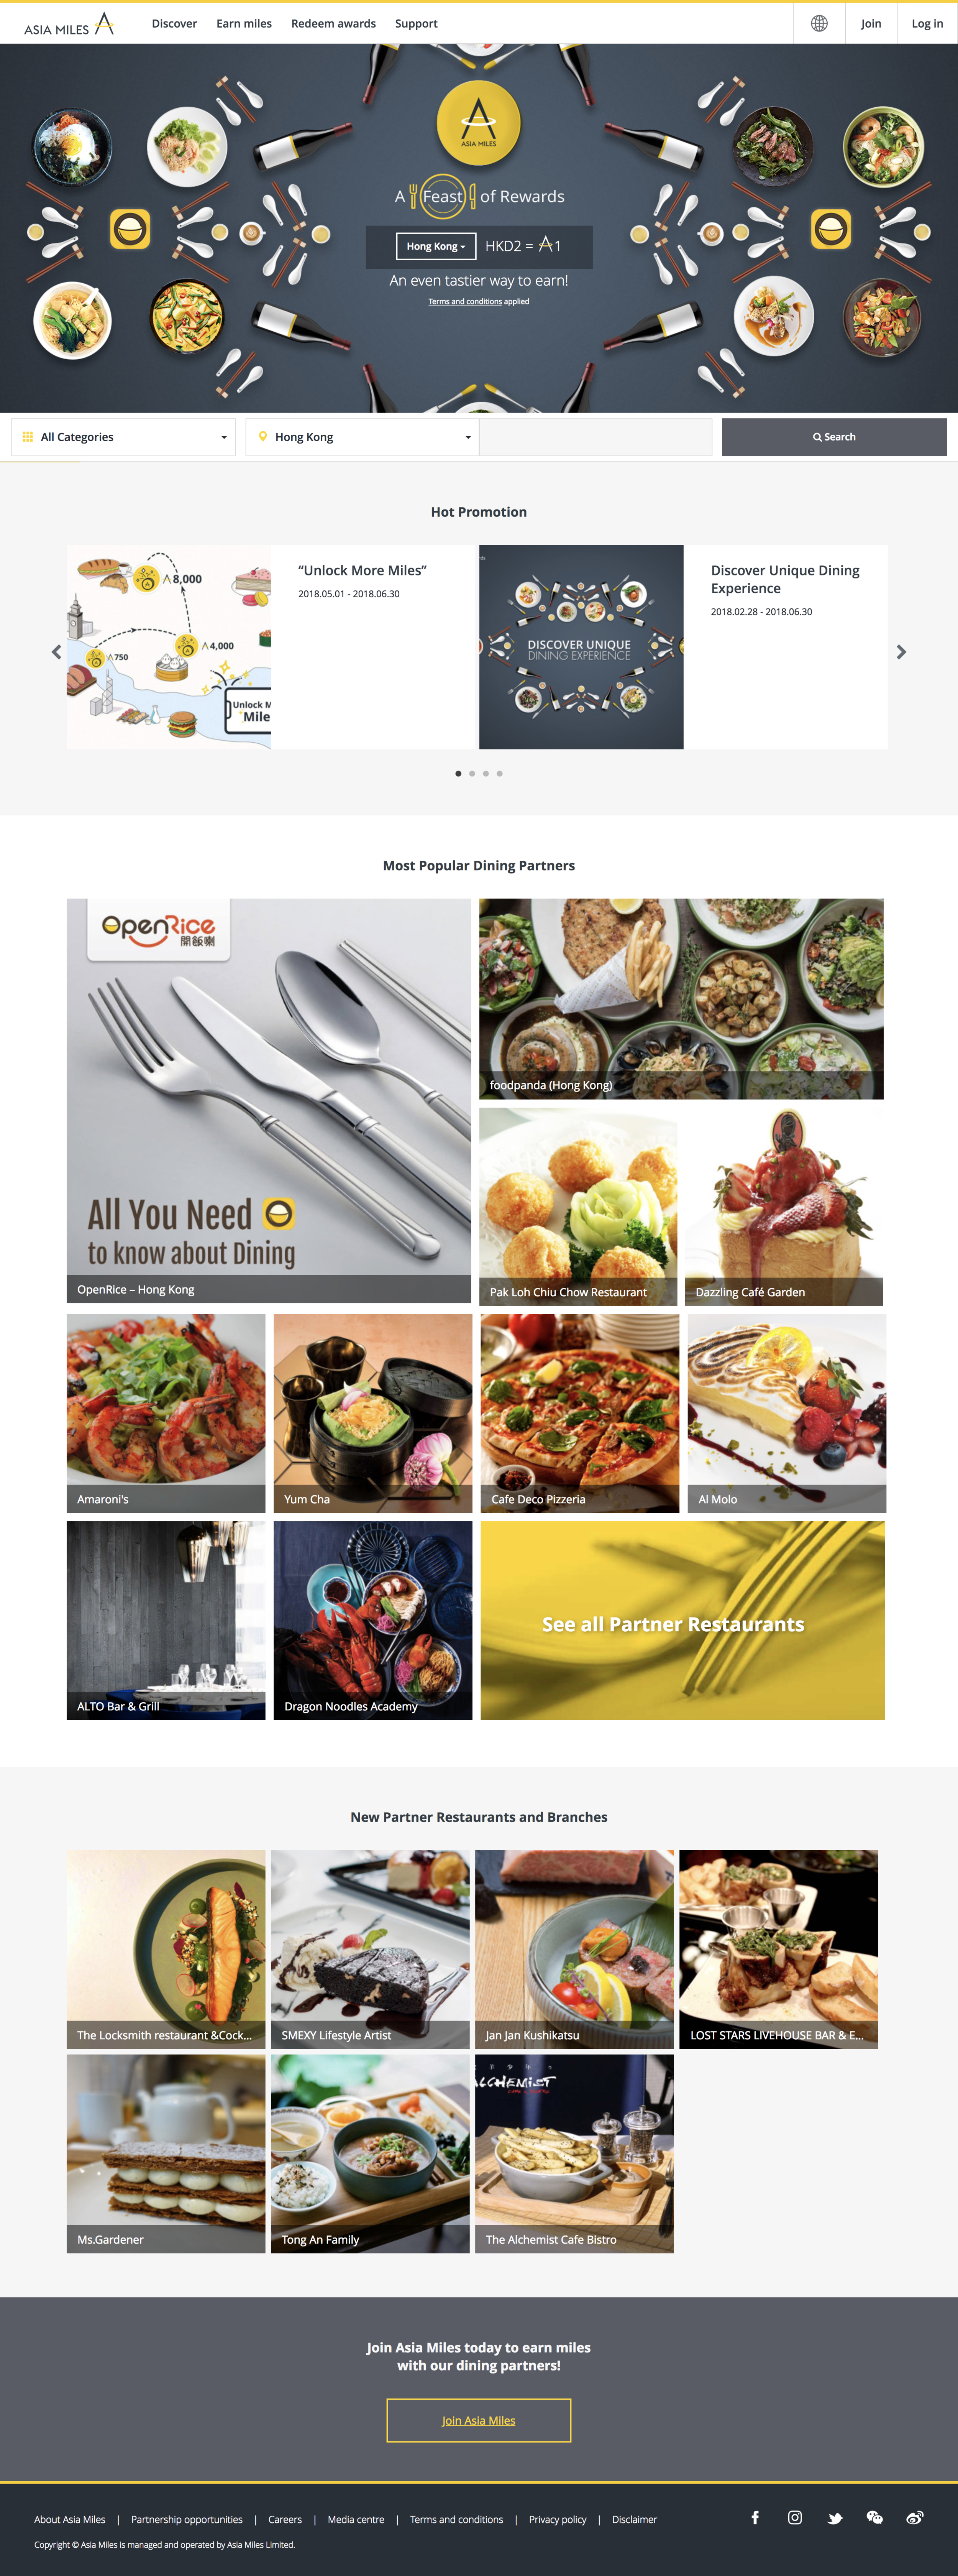 screencapture-dining-asiamiles-en-2018-04-30-23_58_20.png